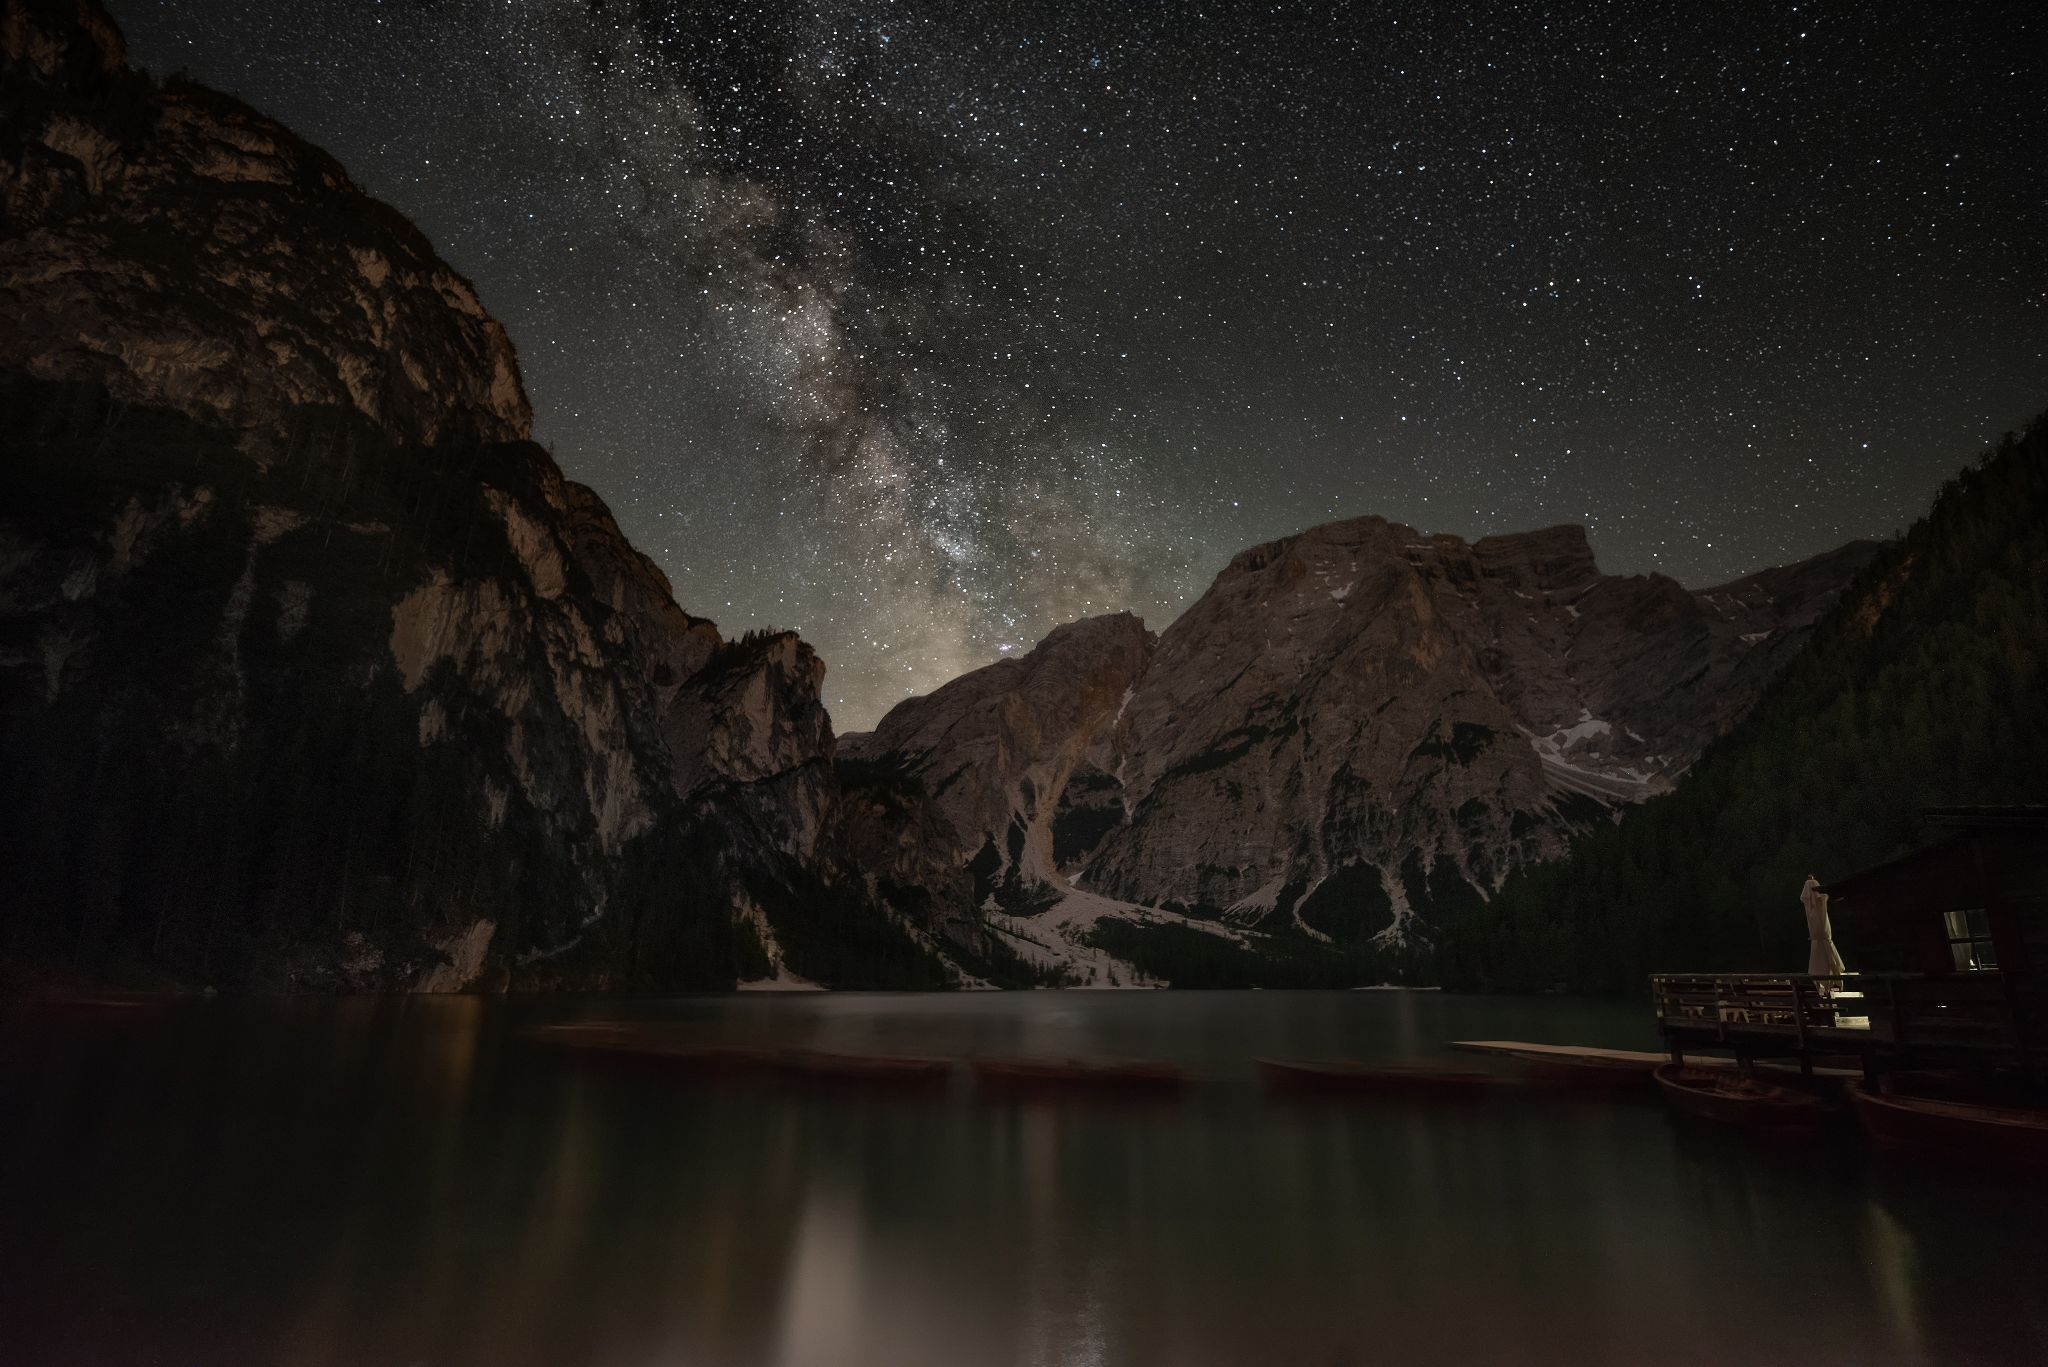 Milky Way above the Lago di Braies, Italy